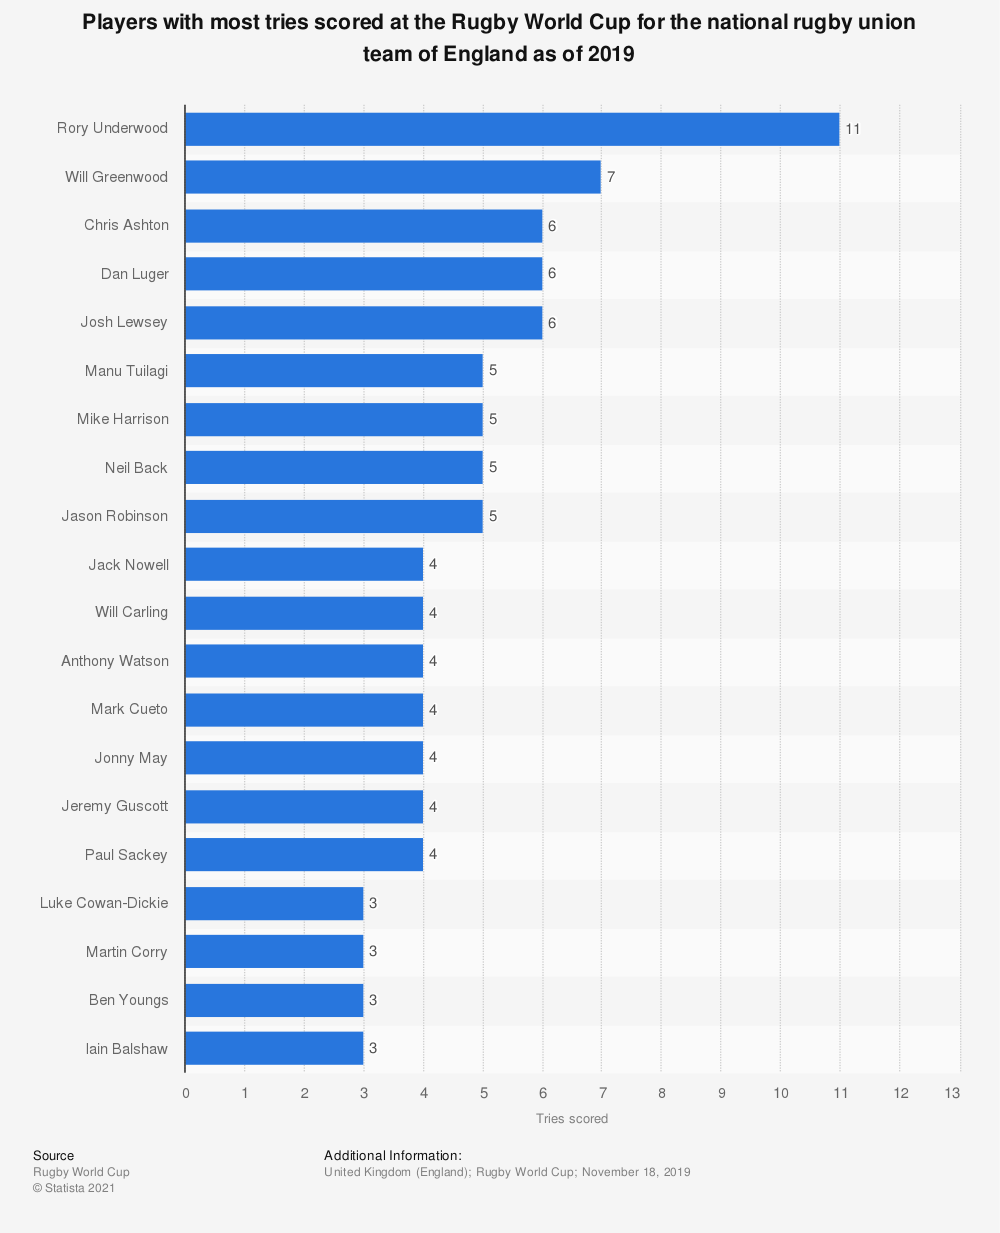 Statistic: Players with most tries scored at the Rugby World Cup for the national rugby union team of England as of 2019 | Statista